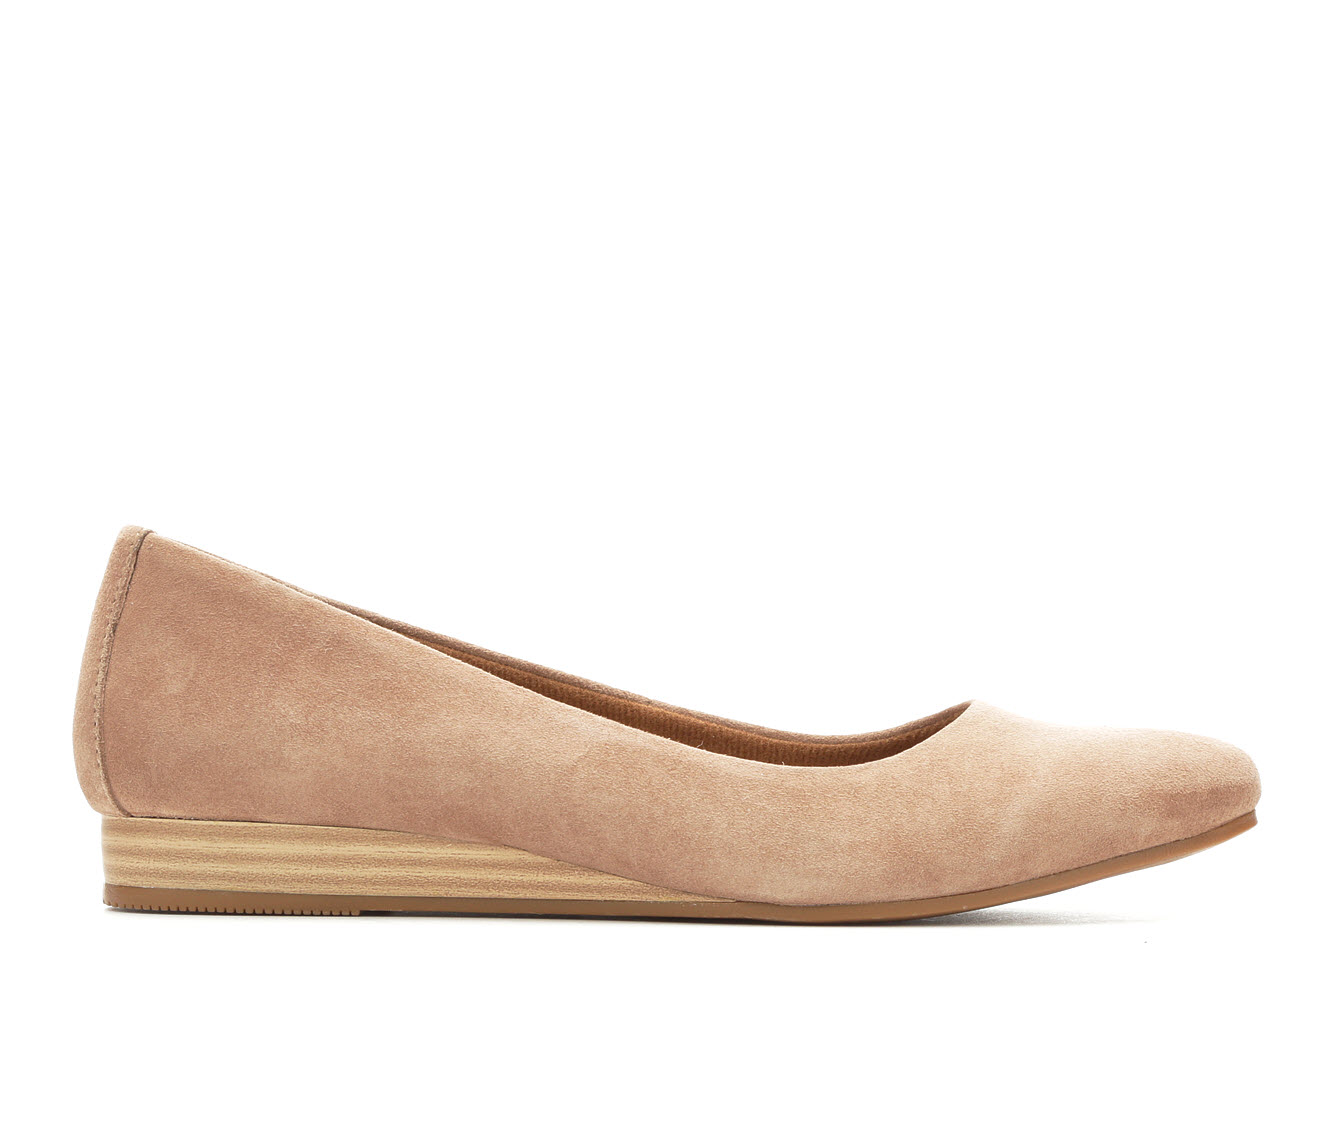 Vintage 7 Eight Lanie Women's Shoe (Pink Leather)